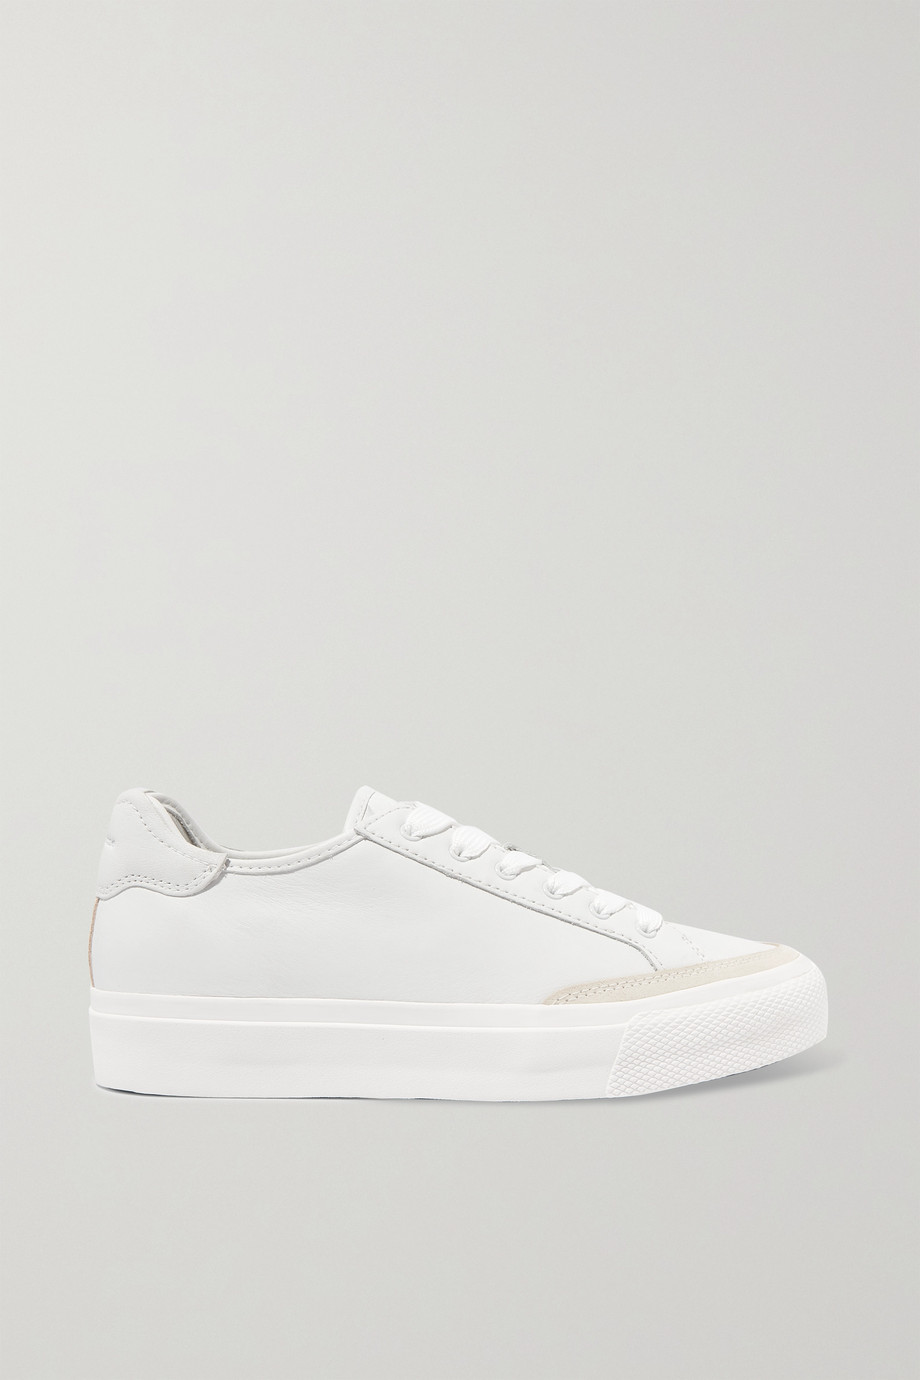 RAG & BONE Army suede-trimmed leather sneakers